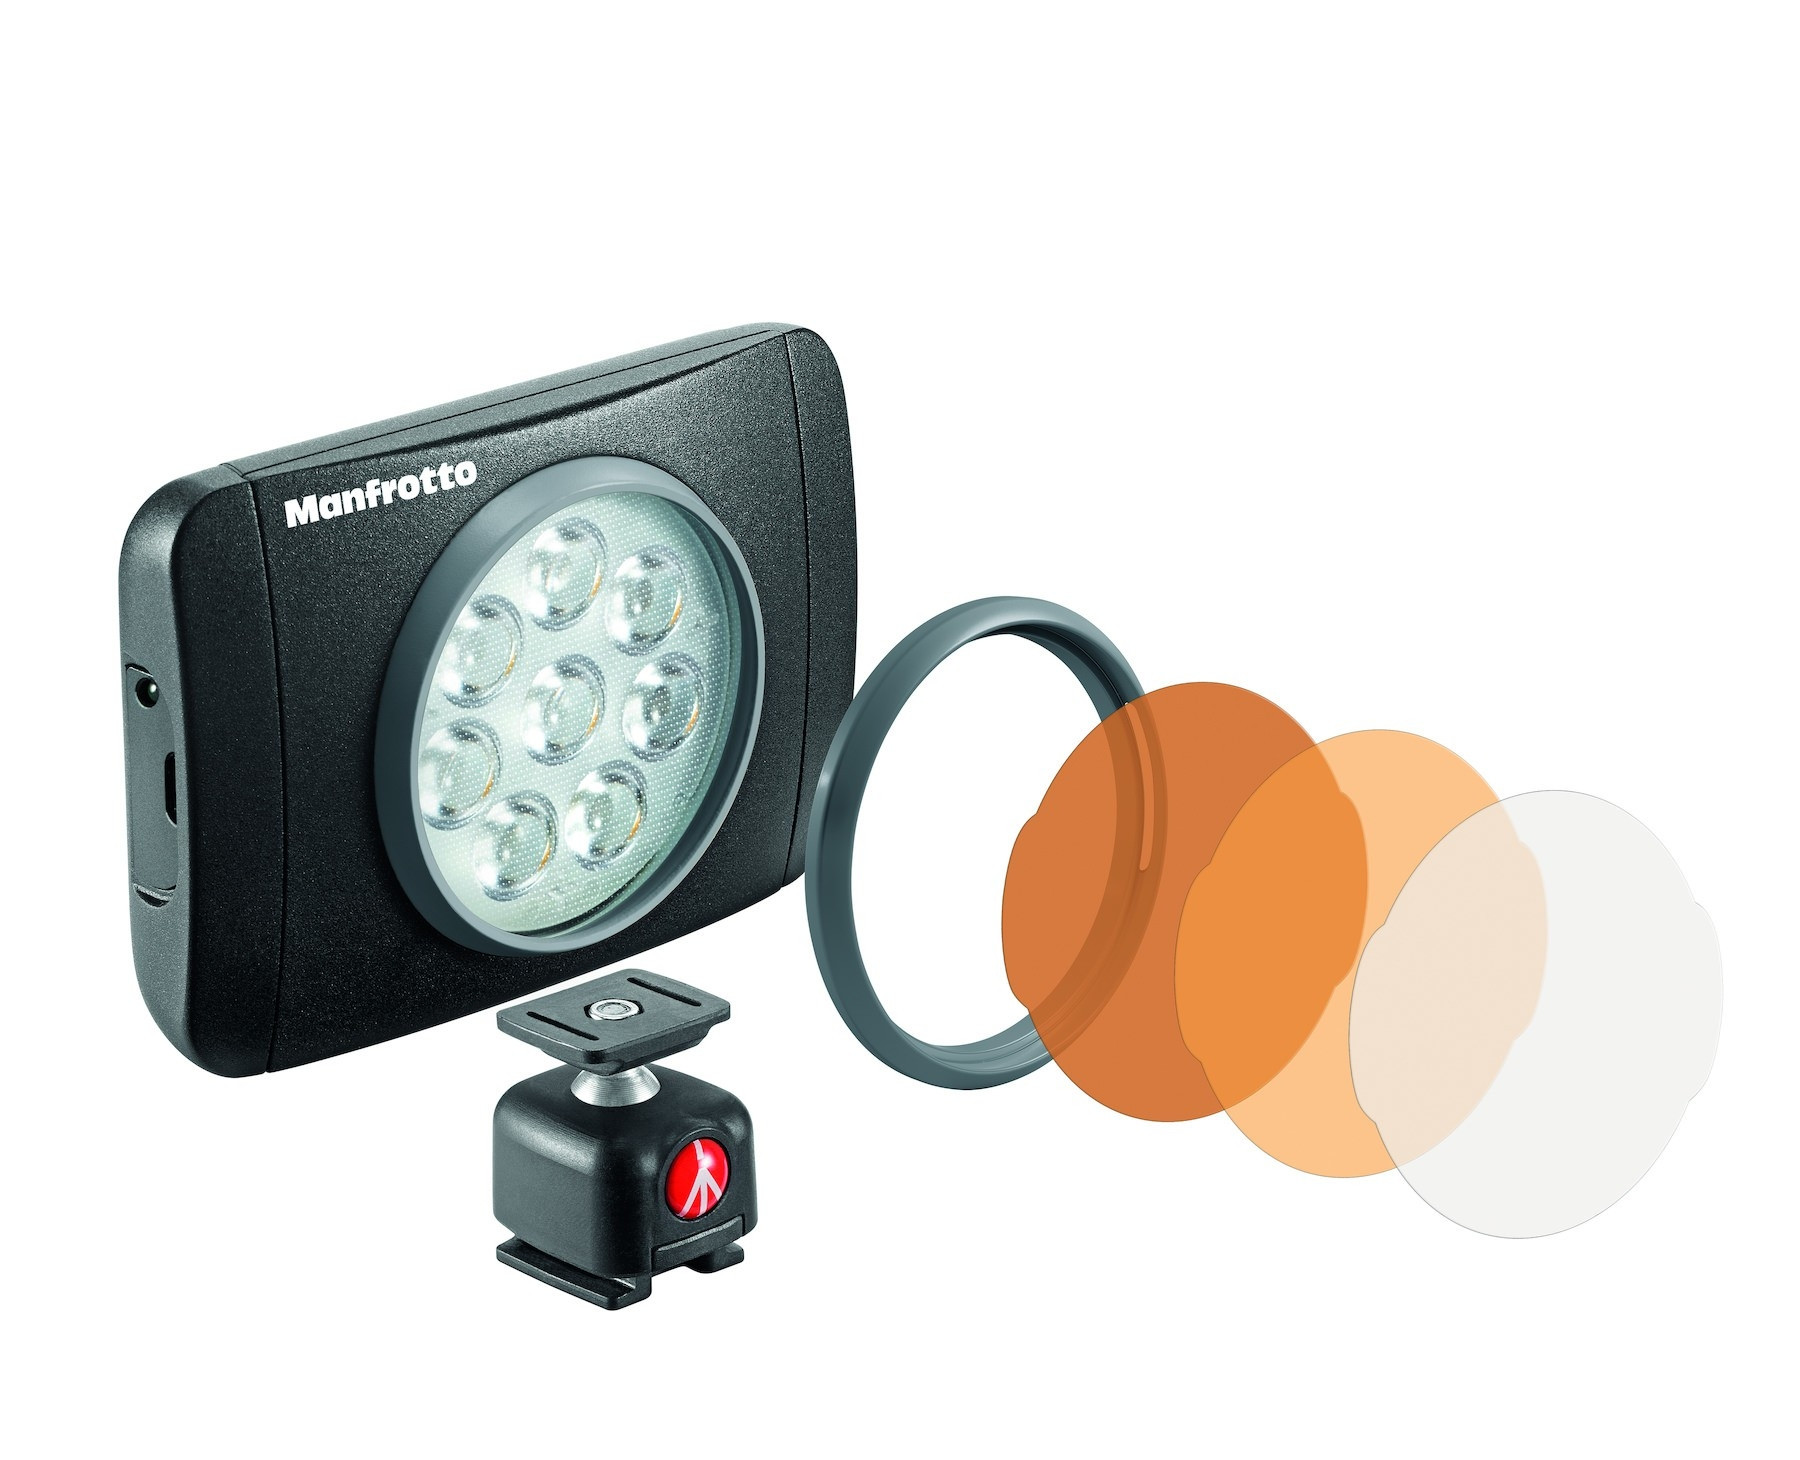 LAMPARA LED LUMIE MUSE DE 8 LEDS NEGRA (MLUMIEMU-BK)719821384540  3